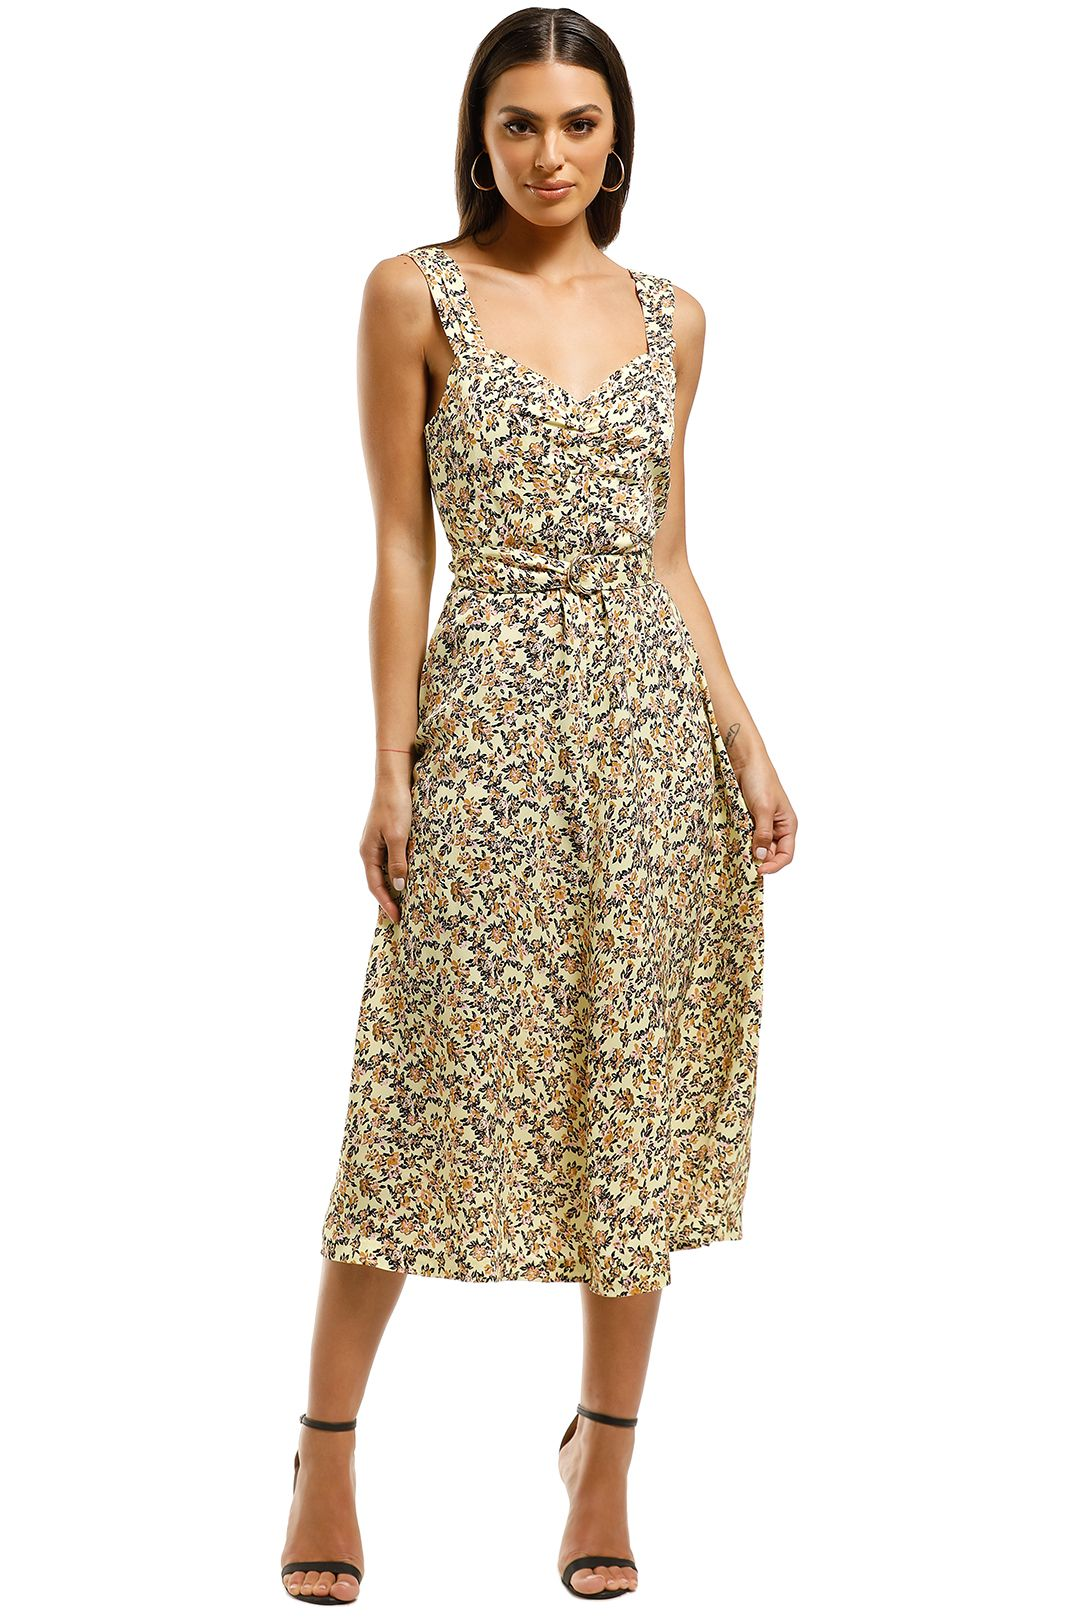 Rebecca-Vallance-Ellie-Sleeveless-Dress-Yellow-Floral-Front